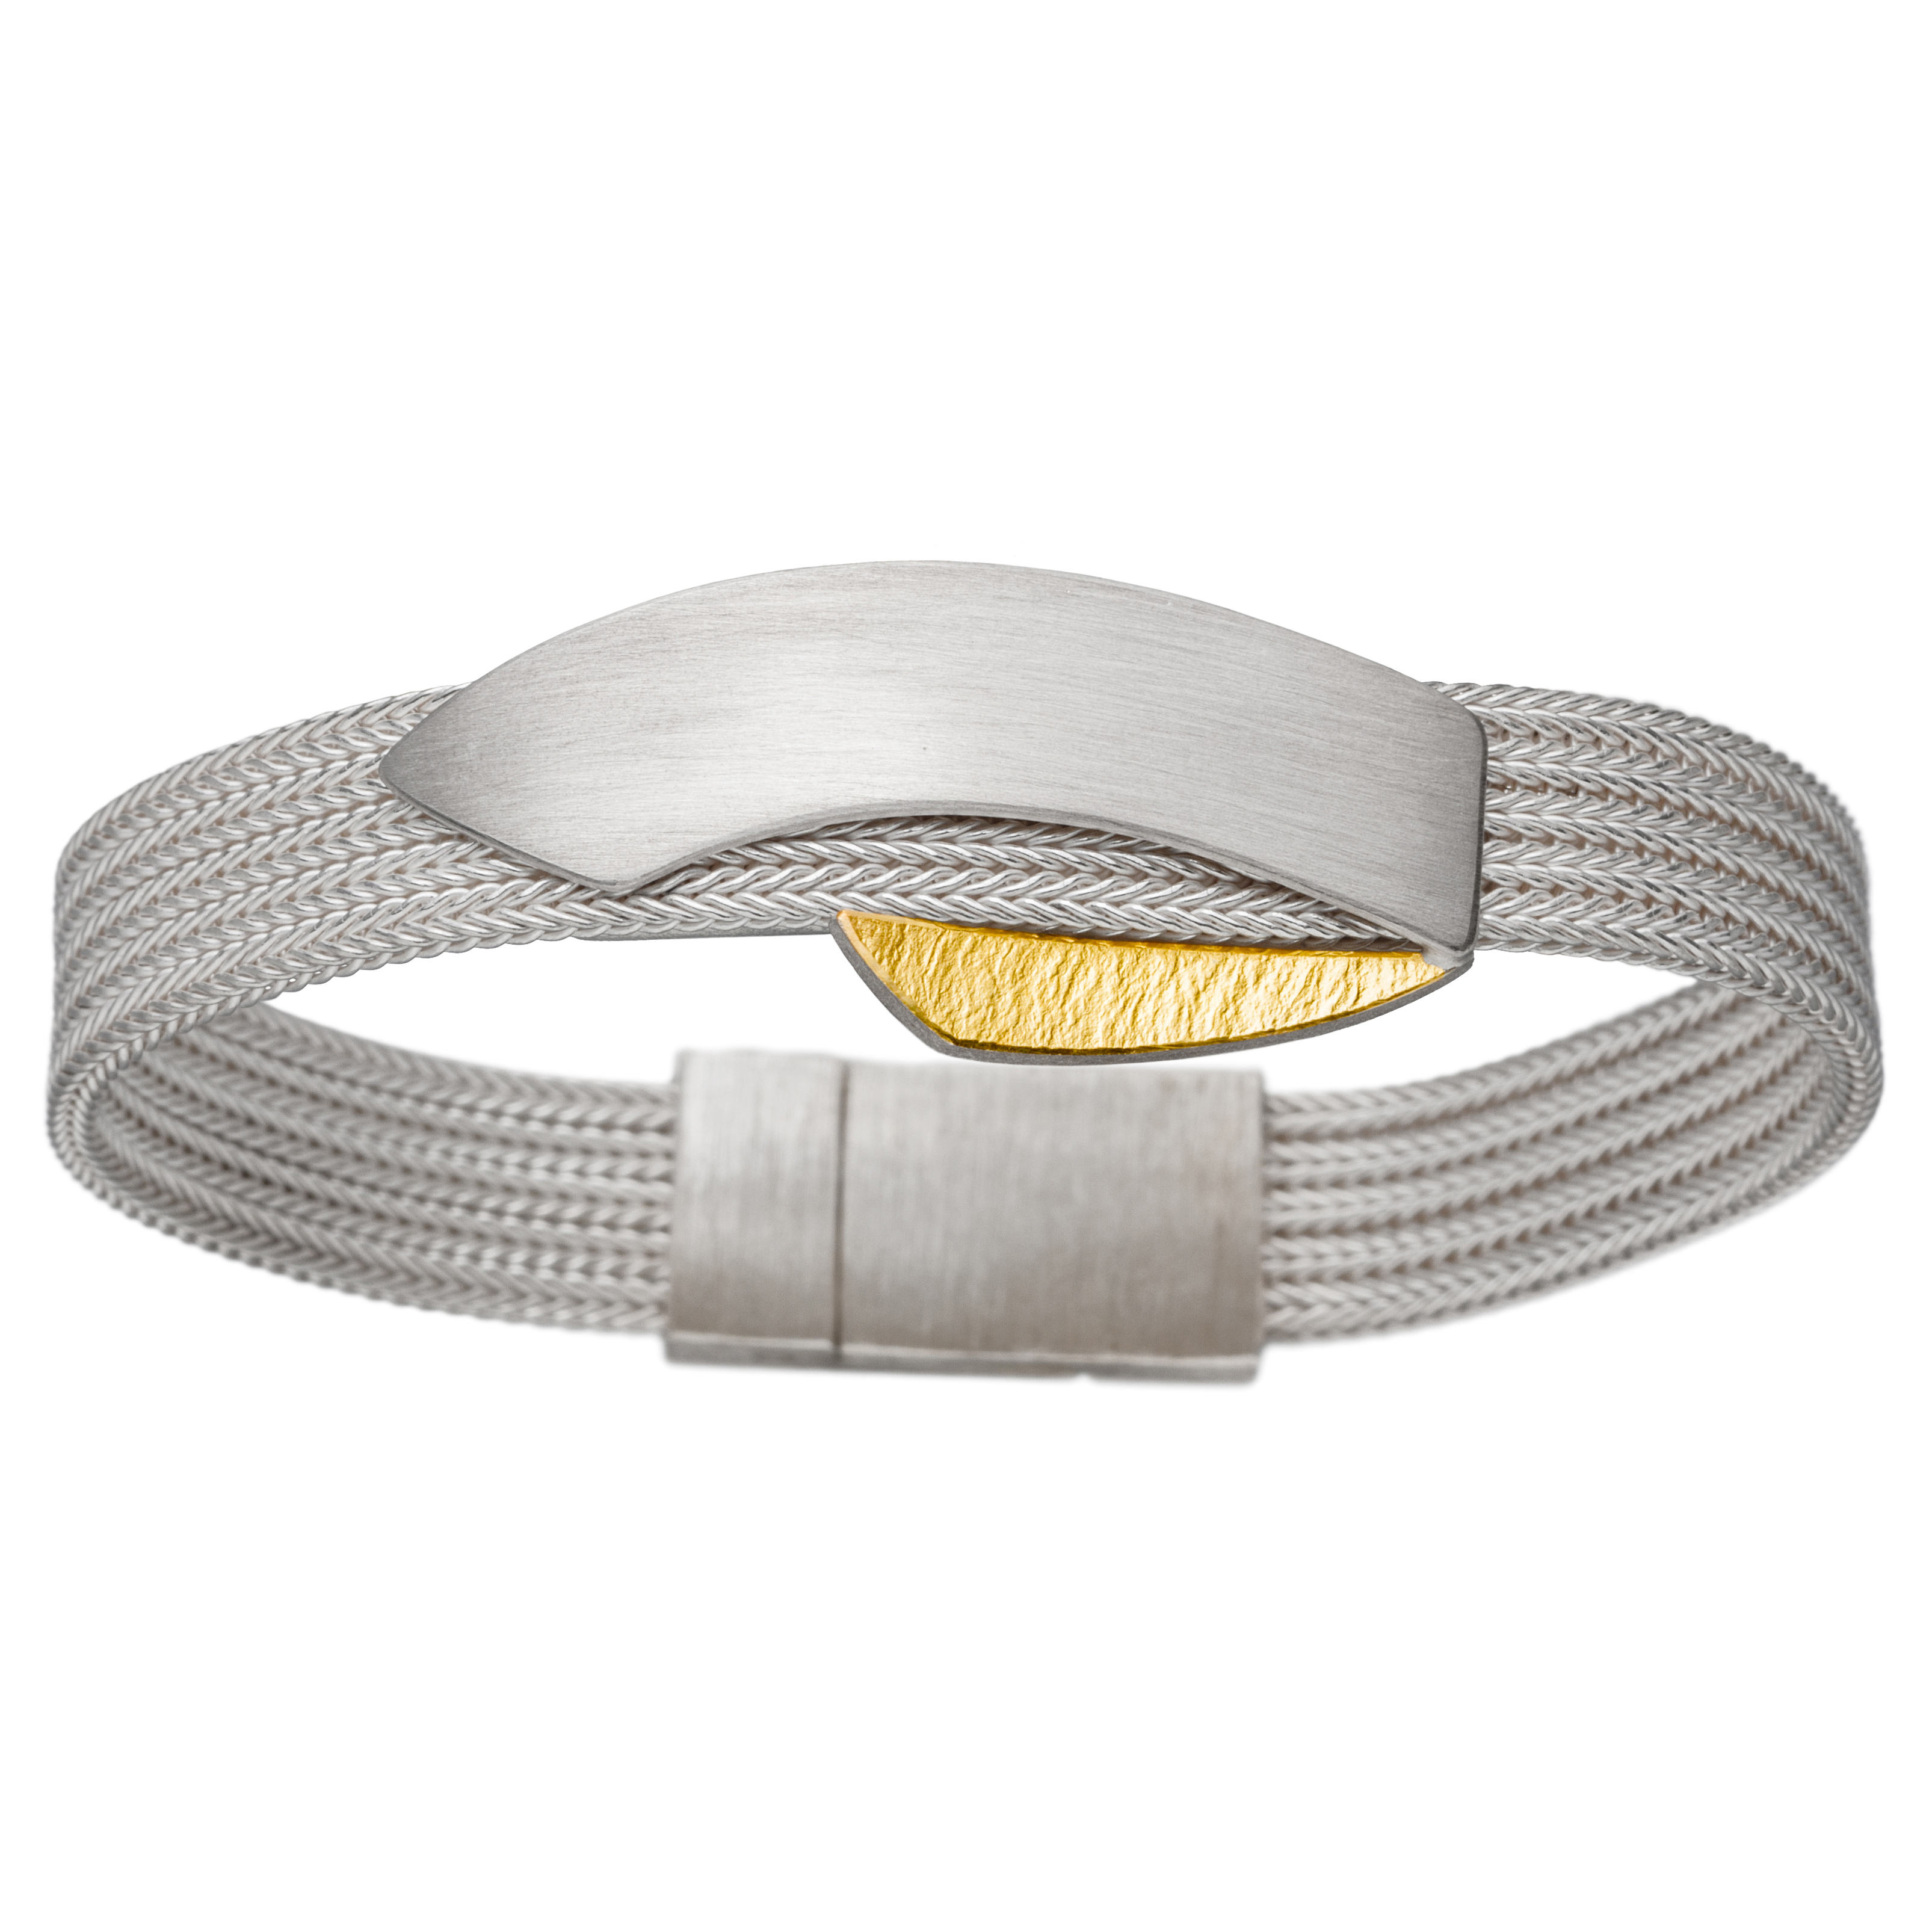 Manu Silver Curved Foxband Bracelet With Gold